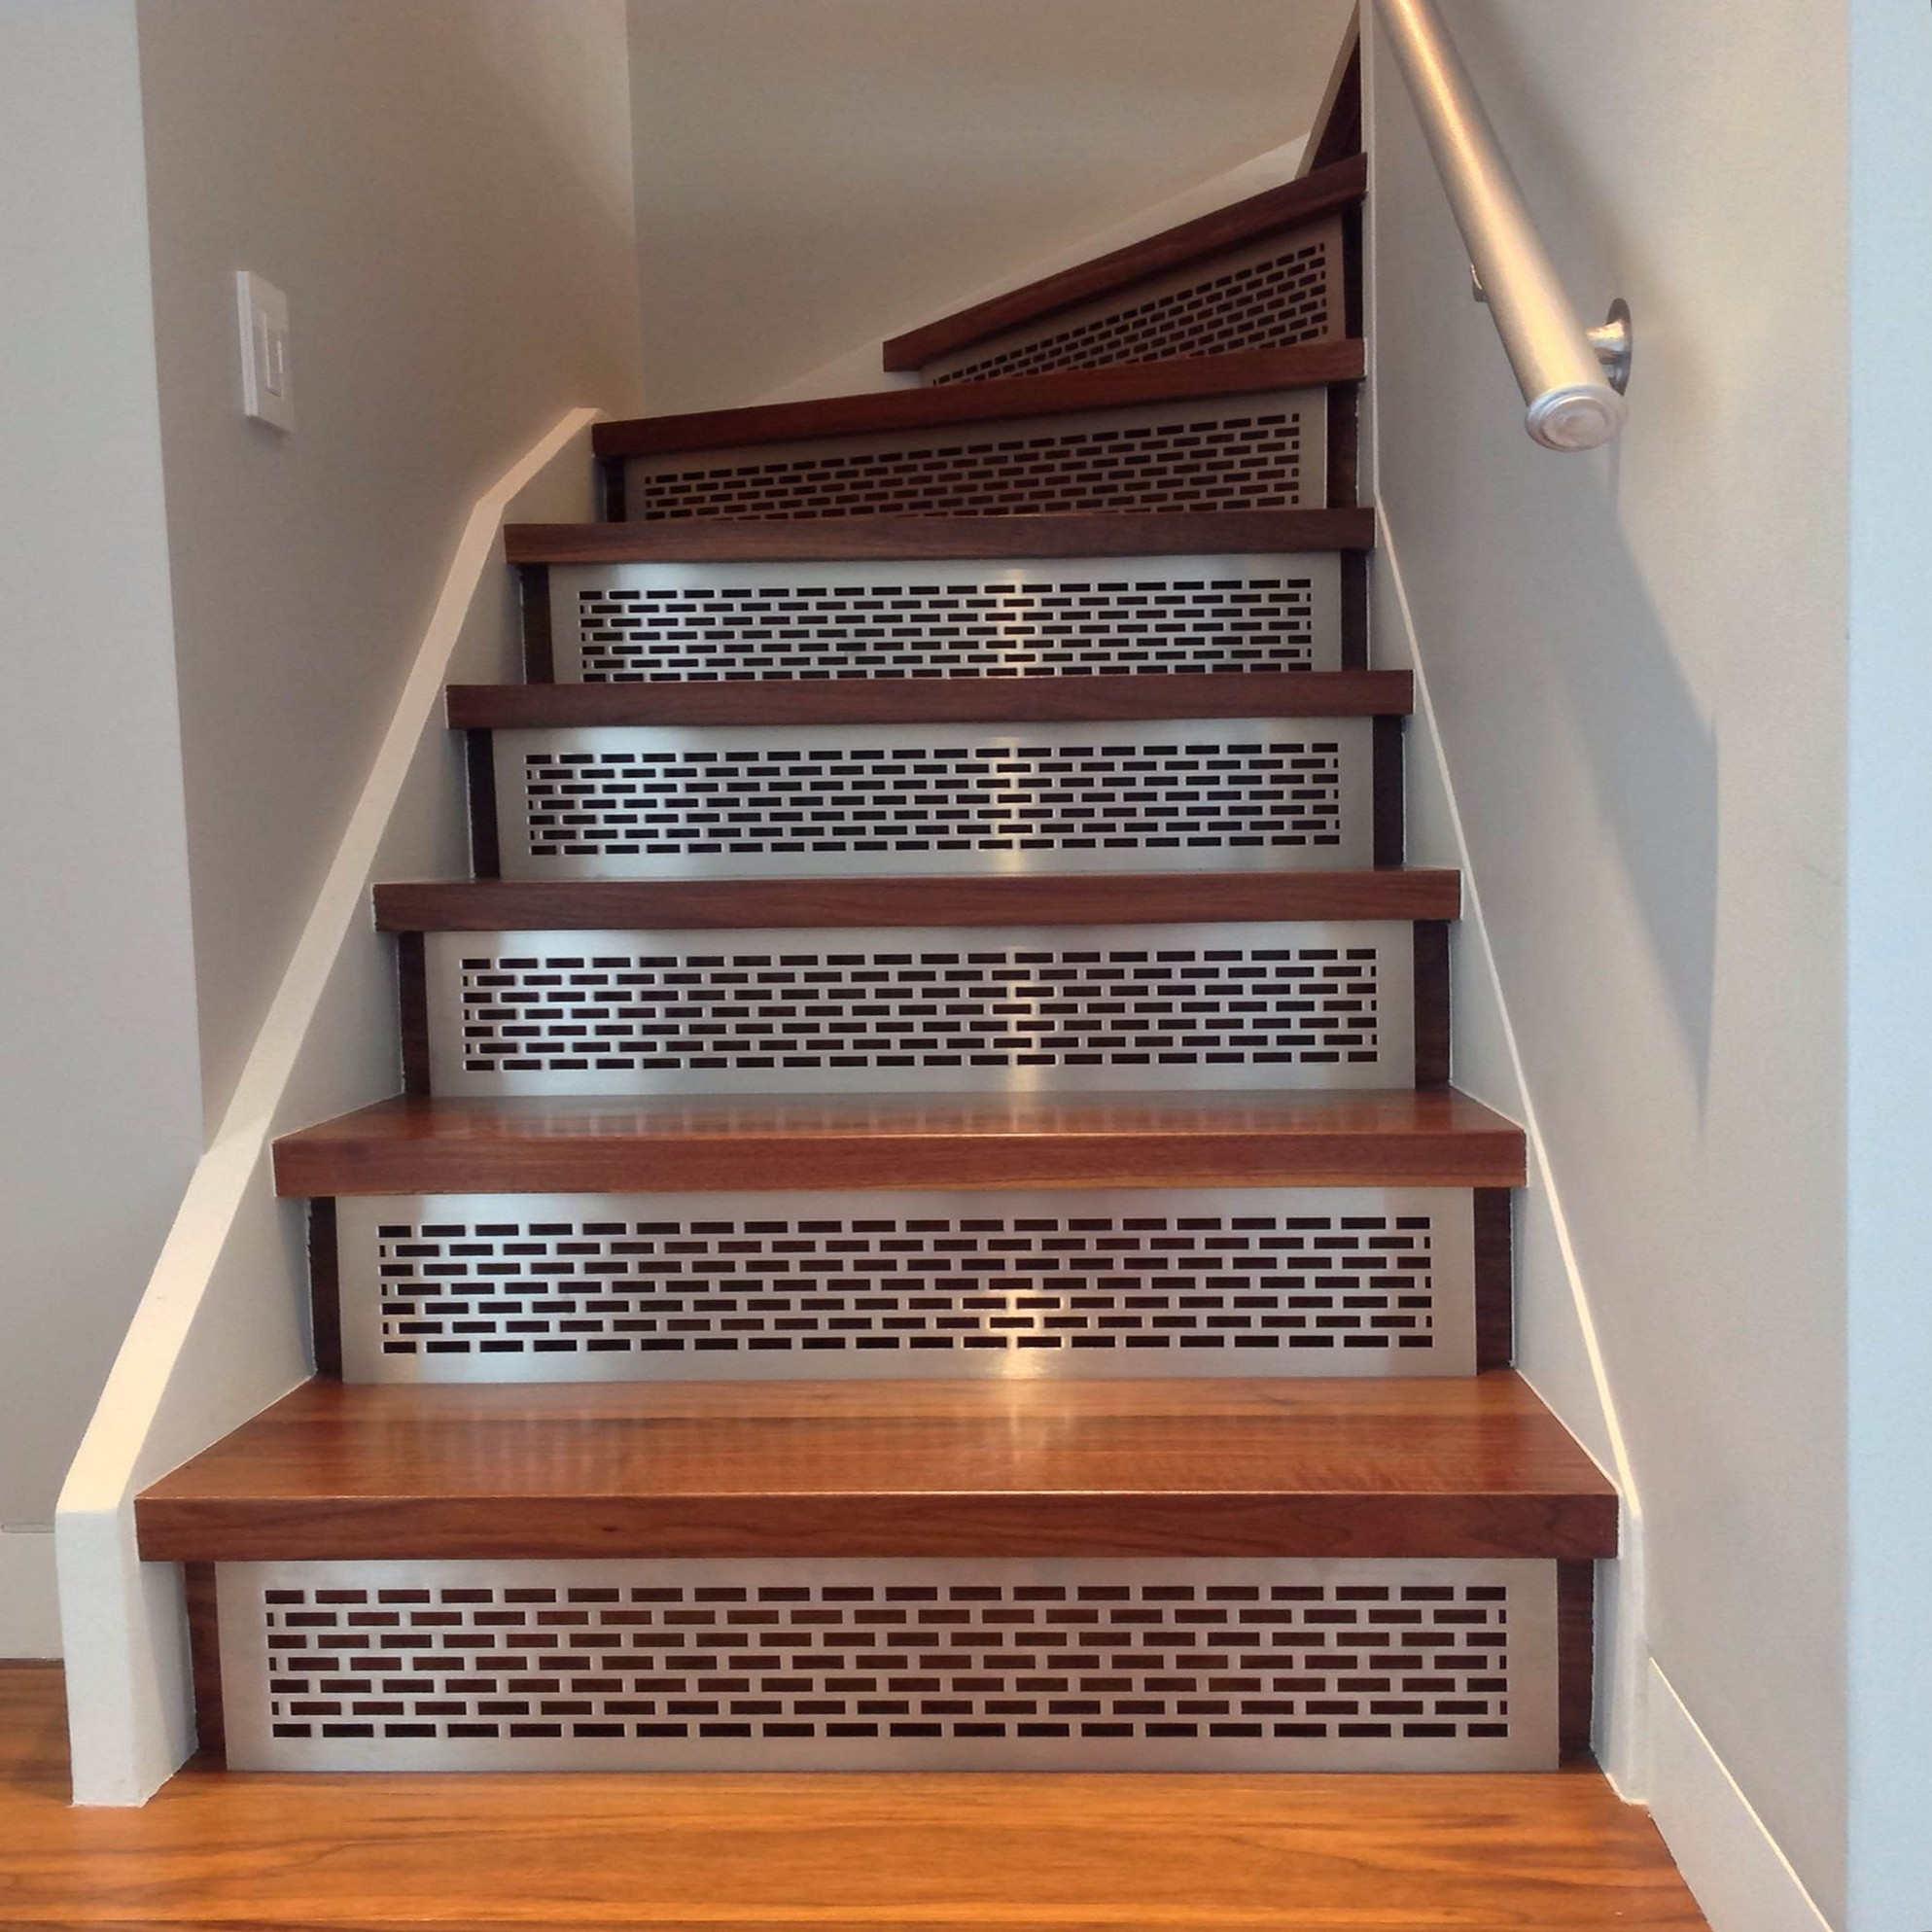 Wondrous Stair Covering Ideas 88 Basement Stair Tread Ideas Covers Within Wooden Stair Grips (#20 of 20)